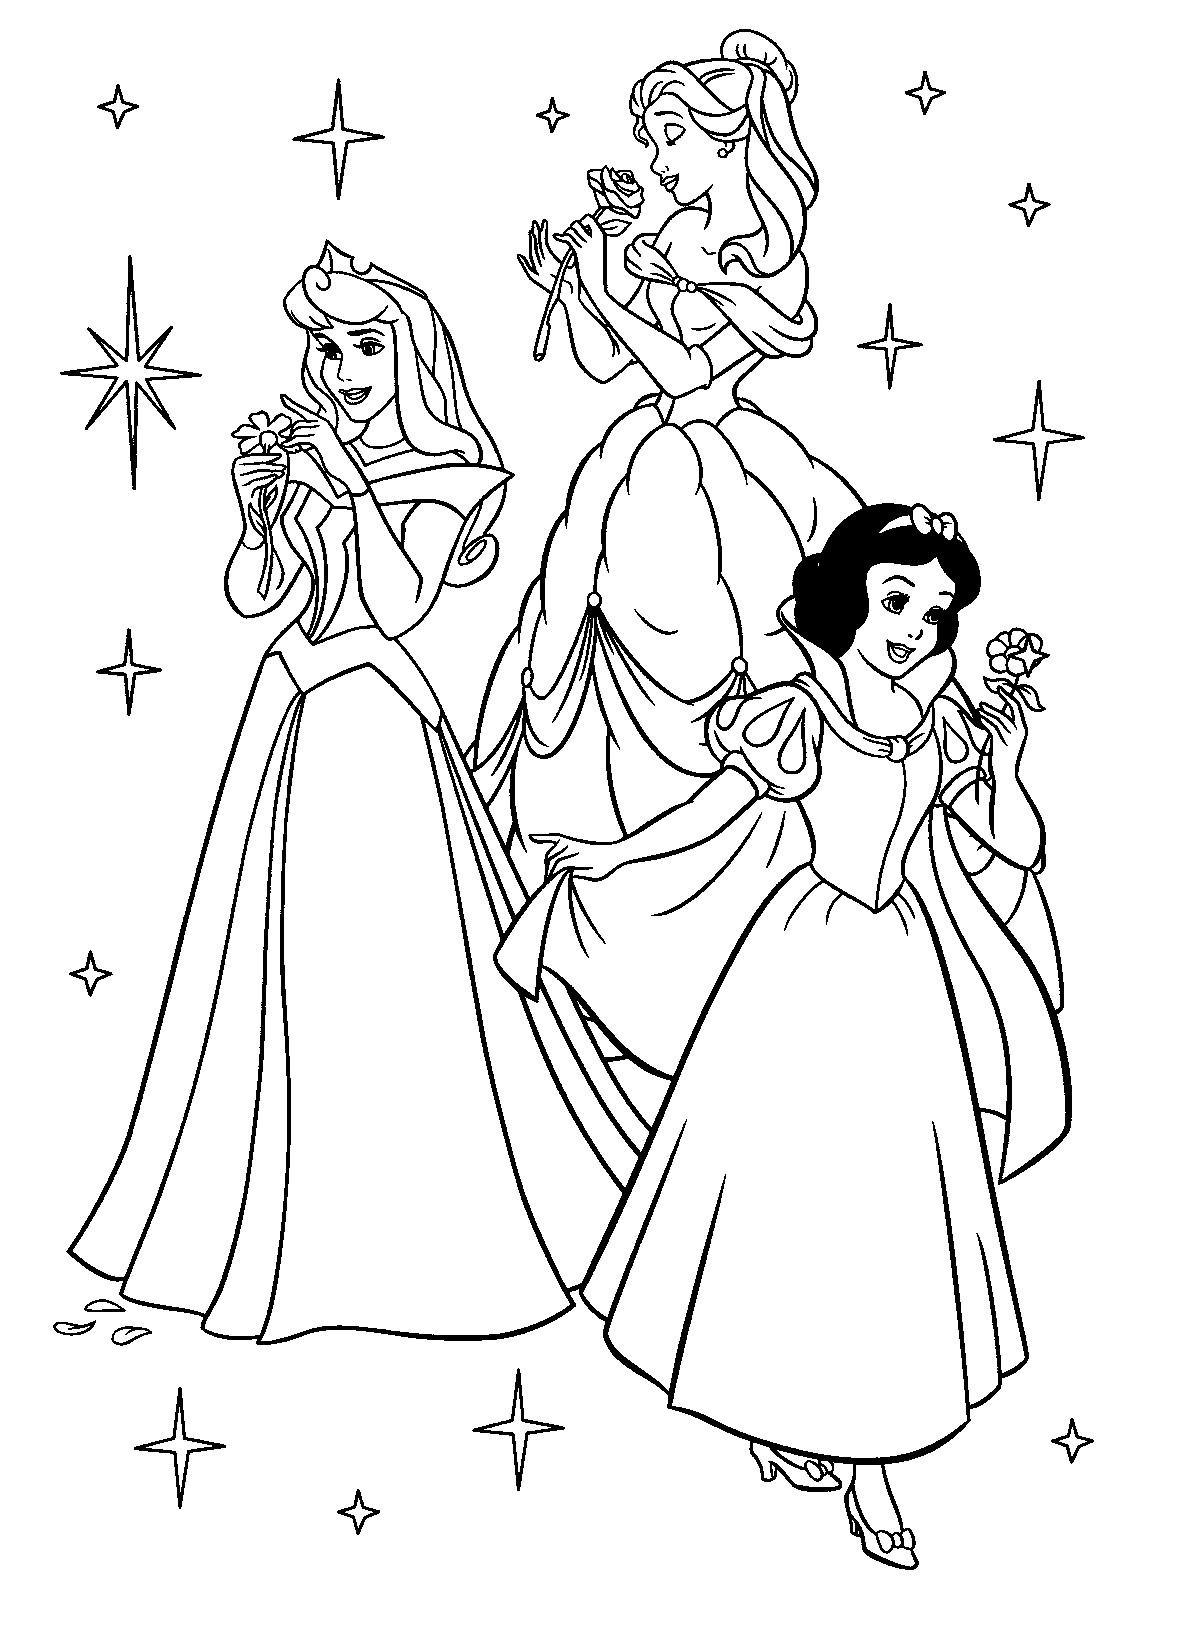 Best ideas about Printable Disney Coloring Sheets For Kids . Save or Pin Princess Coloring Pages Best Coloring Pages For Kids Now.